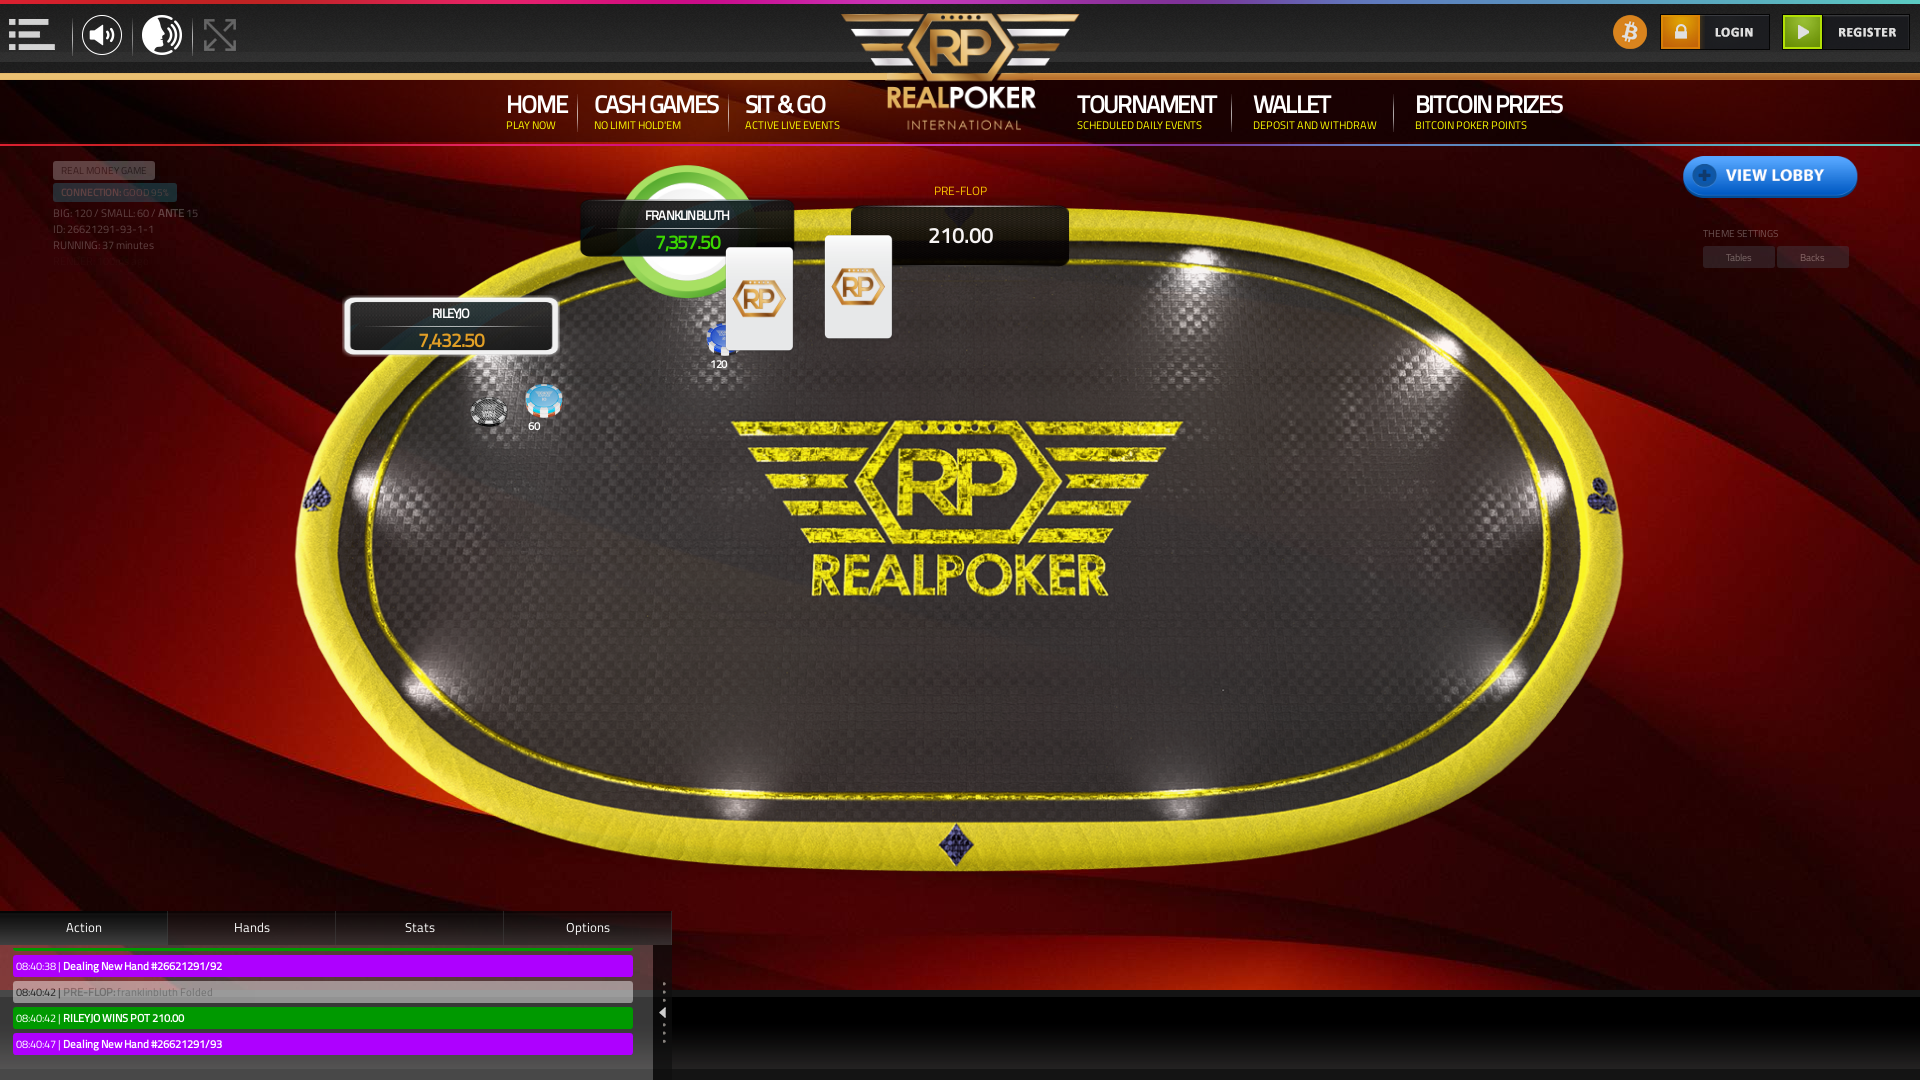 Portugal online poker game on a 10 player table in the 37th minute of the game